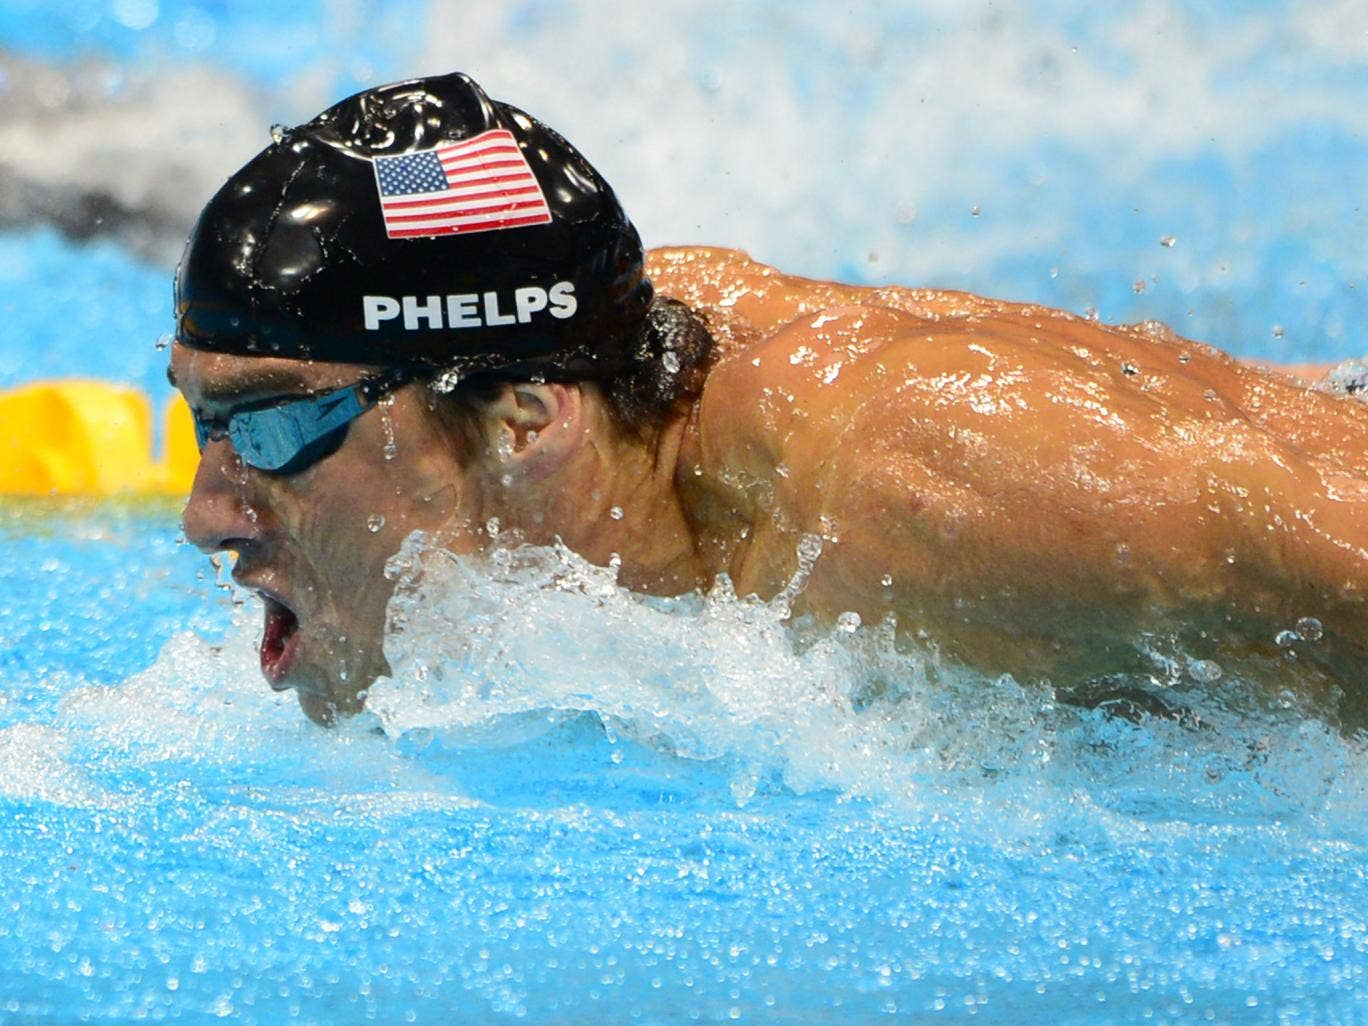 USA Olympic swimmer Michael Phelps looks set for a comeback after re-registering with USADA